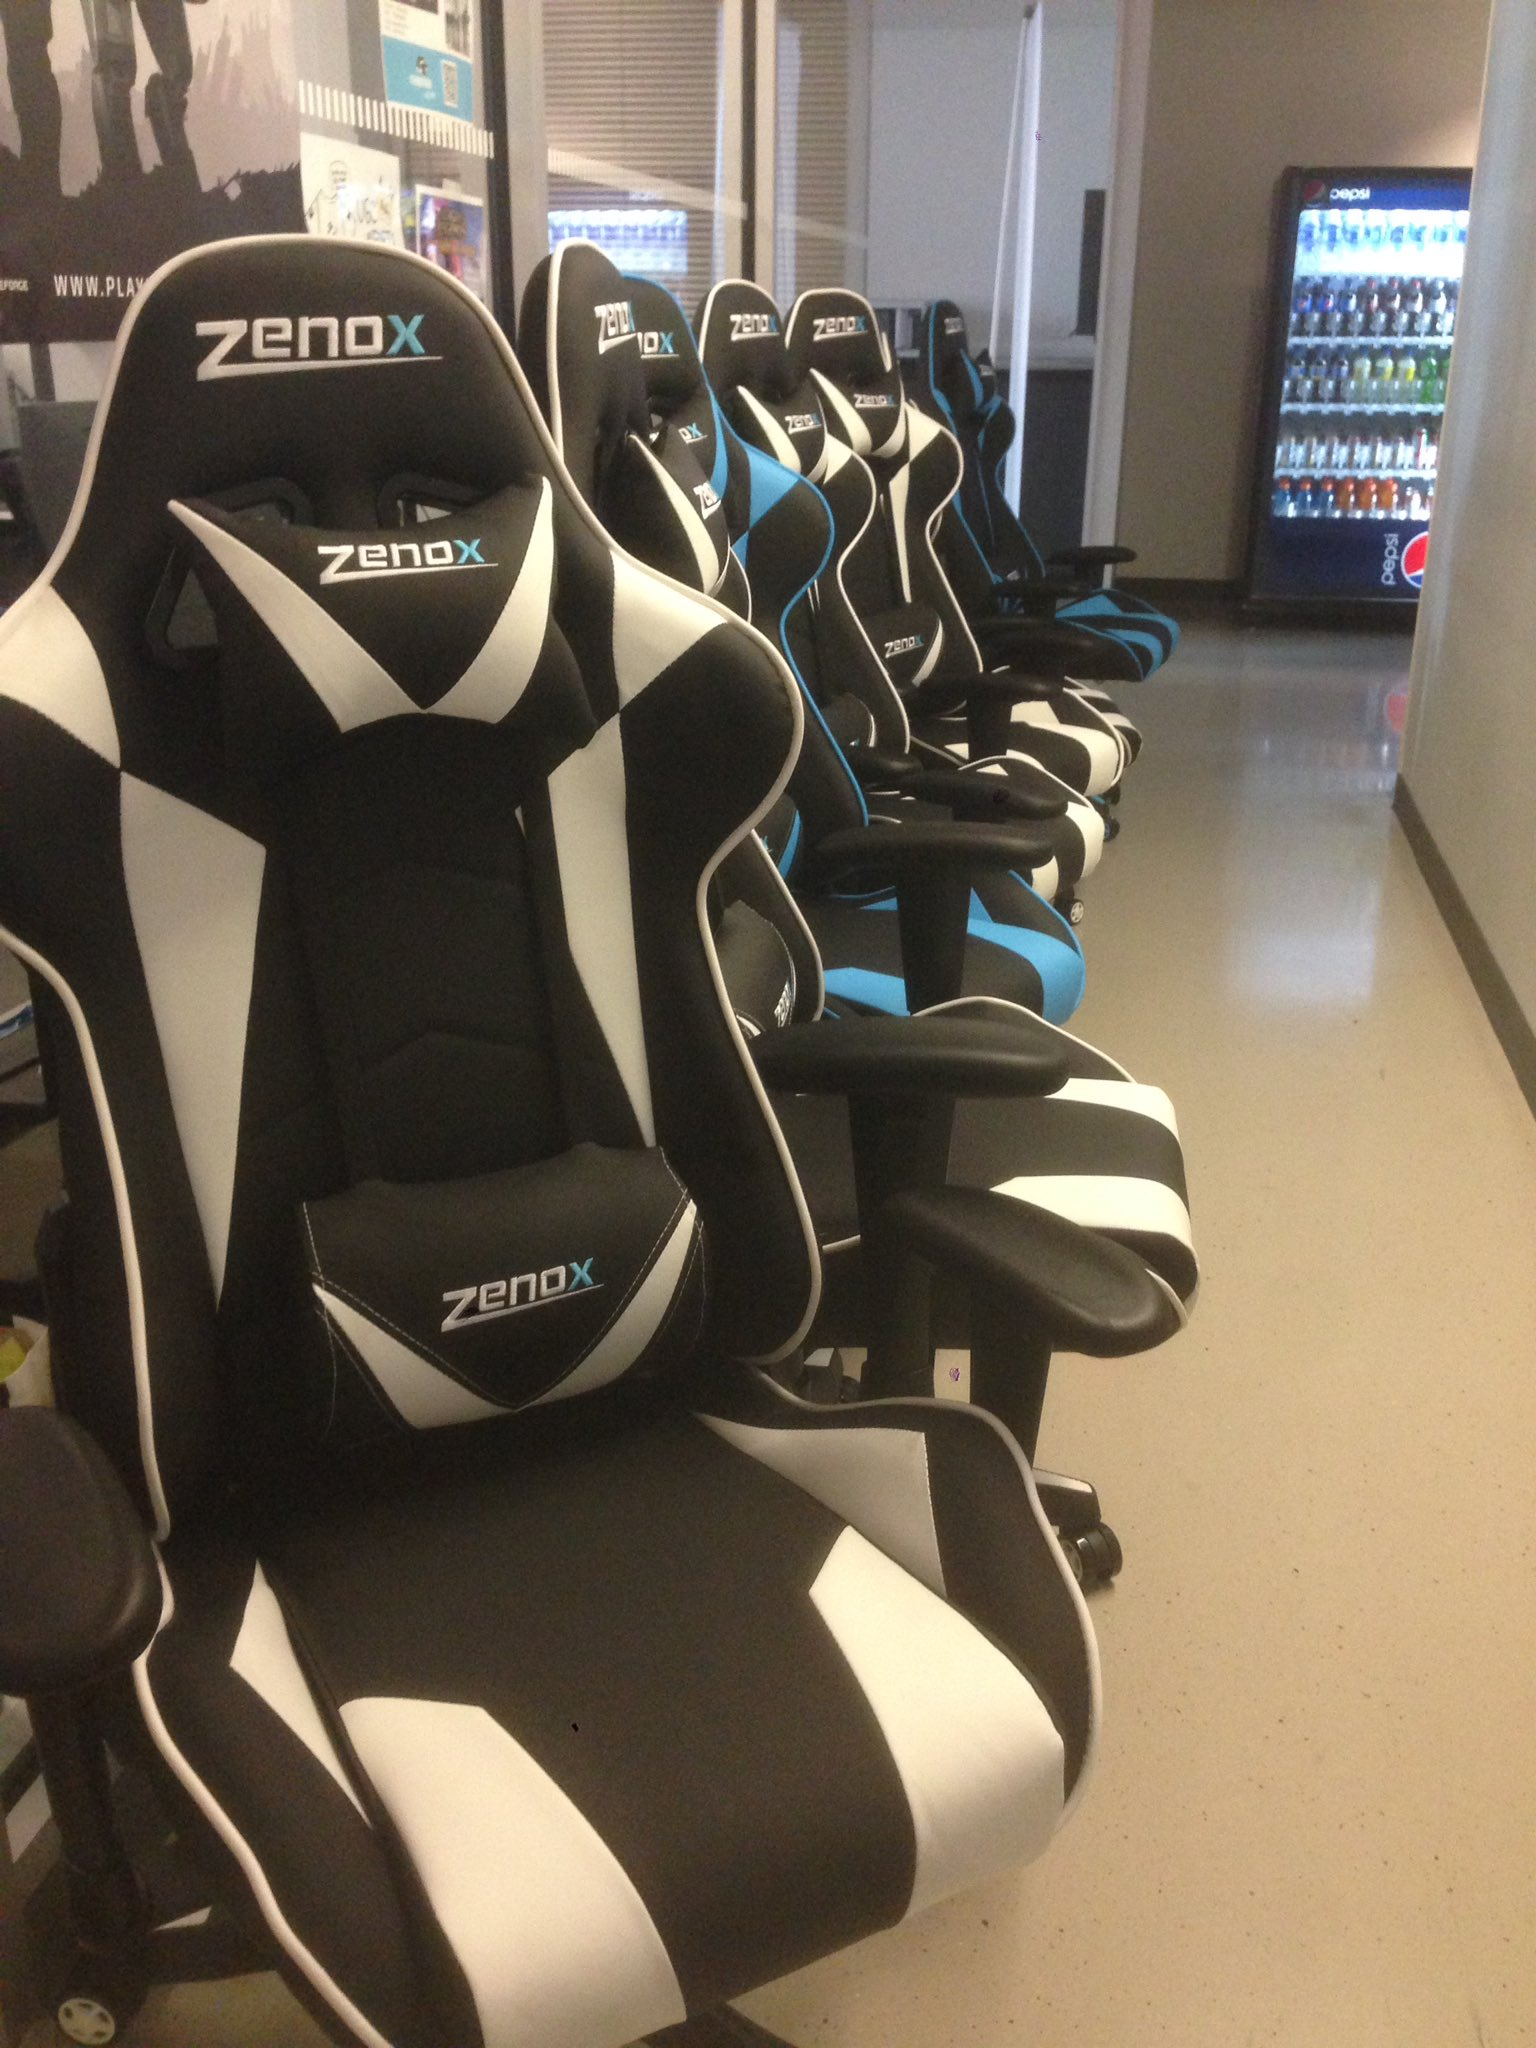 Swell Ubc Esports On Twitter Putting Together New Zenox Pluto Machost Co Dining Chair Design Ideas Machostcouk